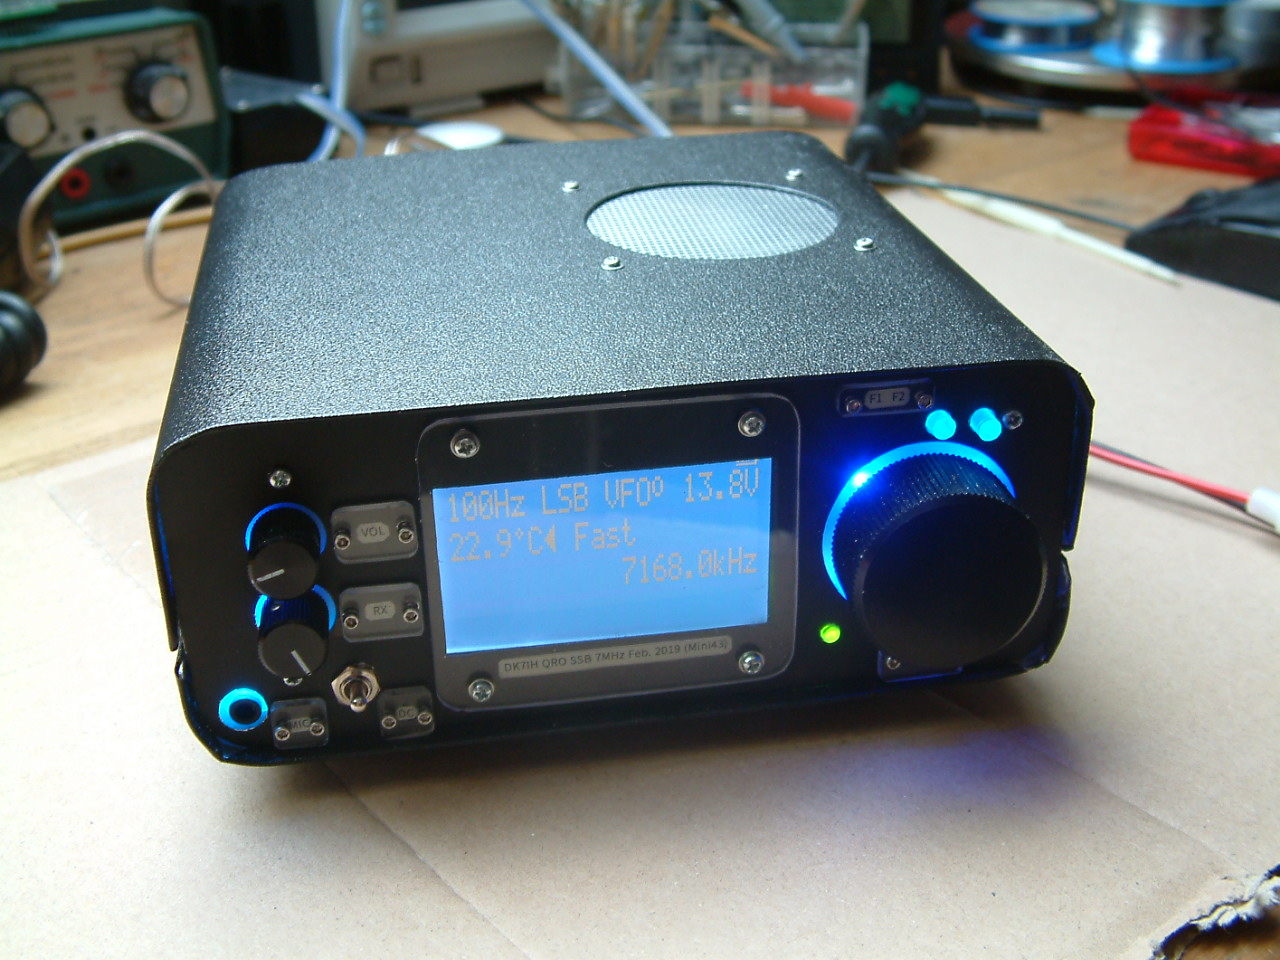 DK7IH QRO SSB transceiver for 7MHz/40m